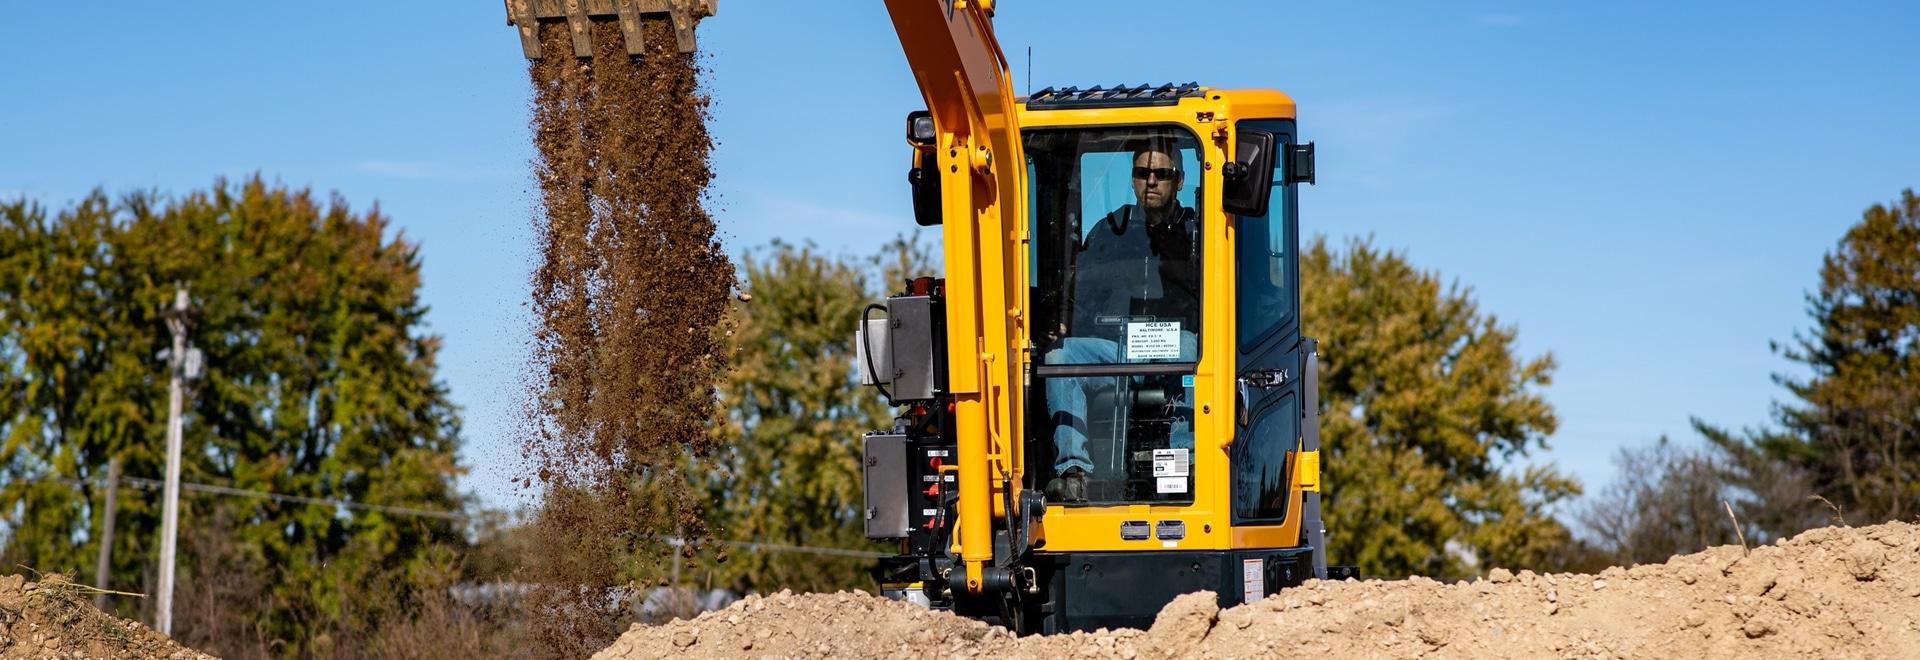 Hyundai, Cummins unveil jointly-developed electric mini excavator